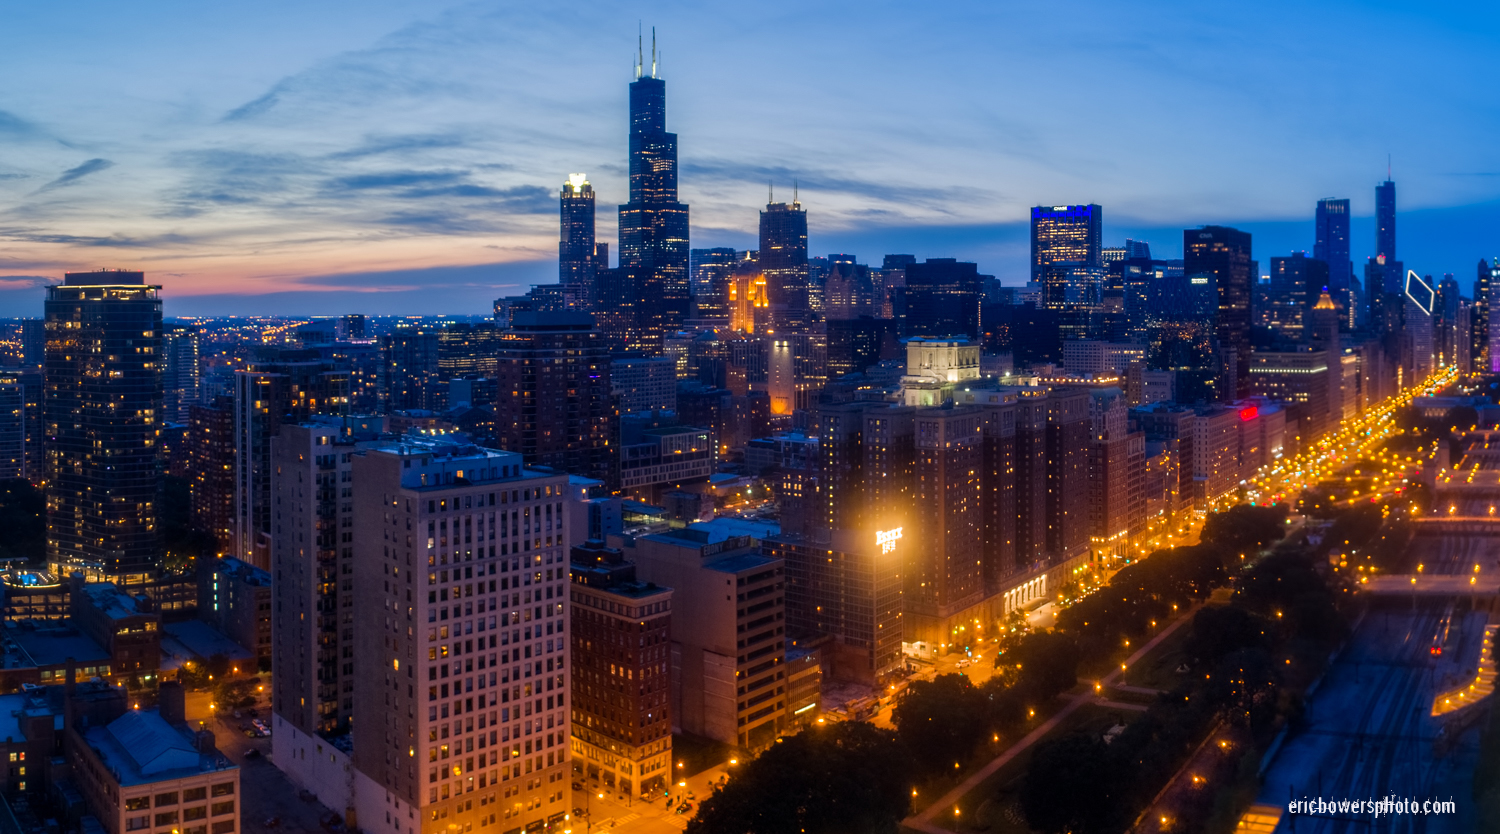 Chicago Loop Skyscraper Dusk Aerial Photo